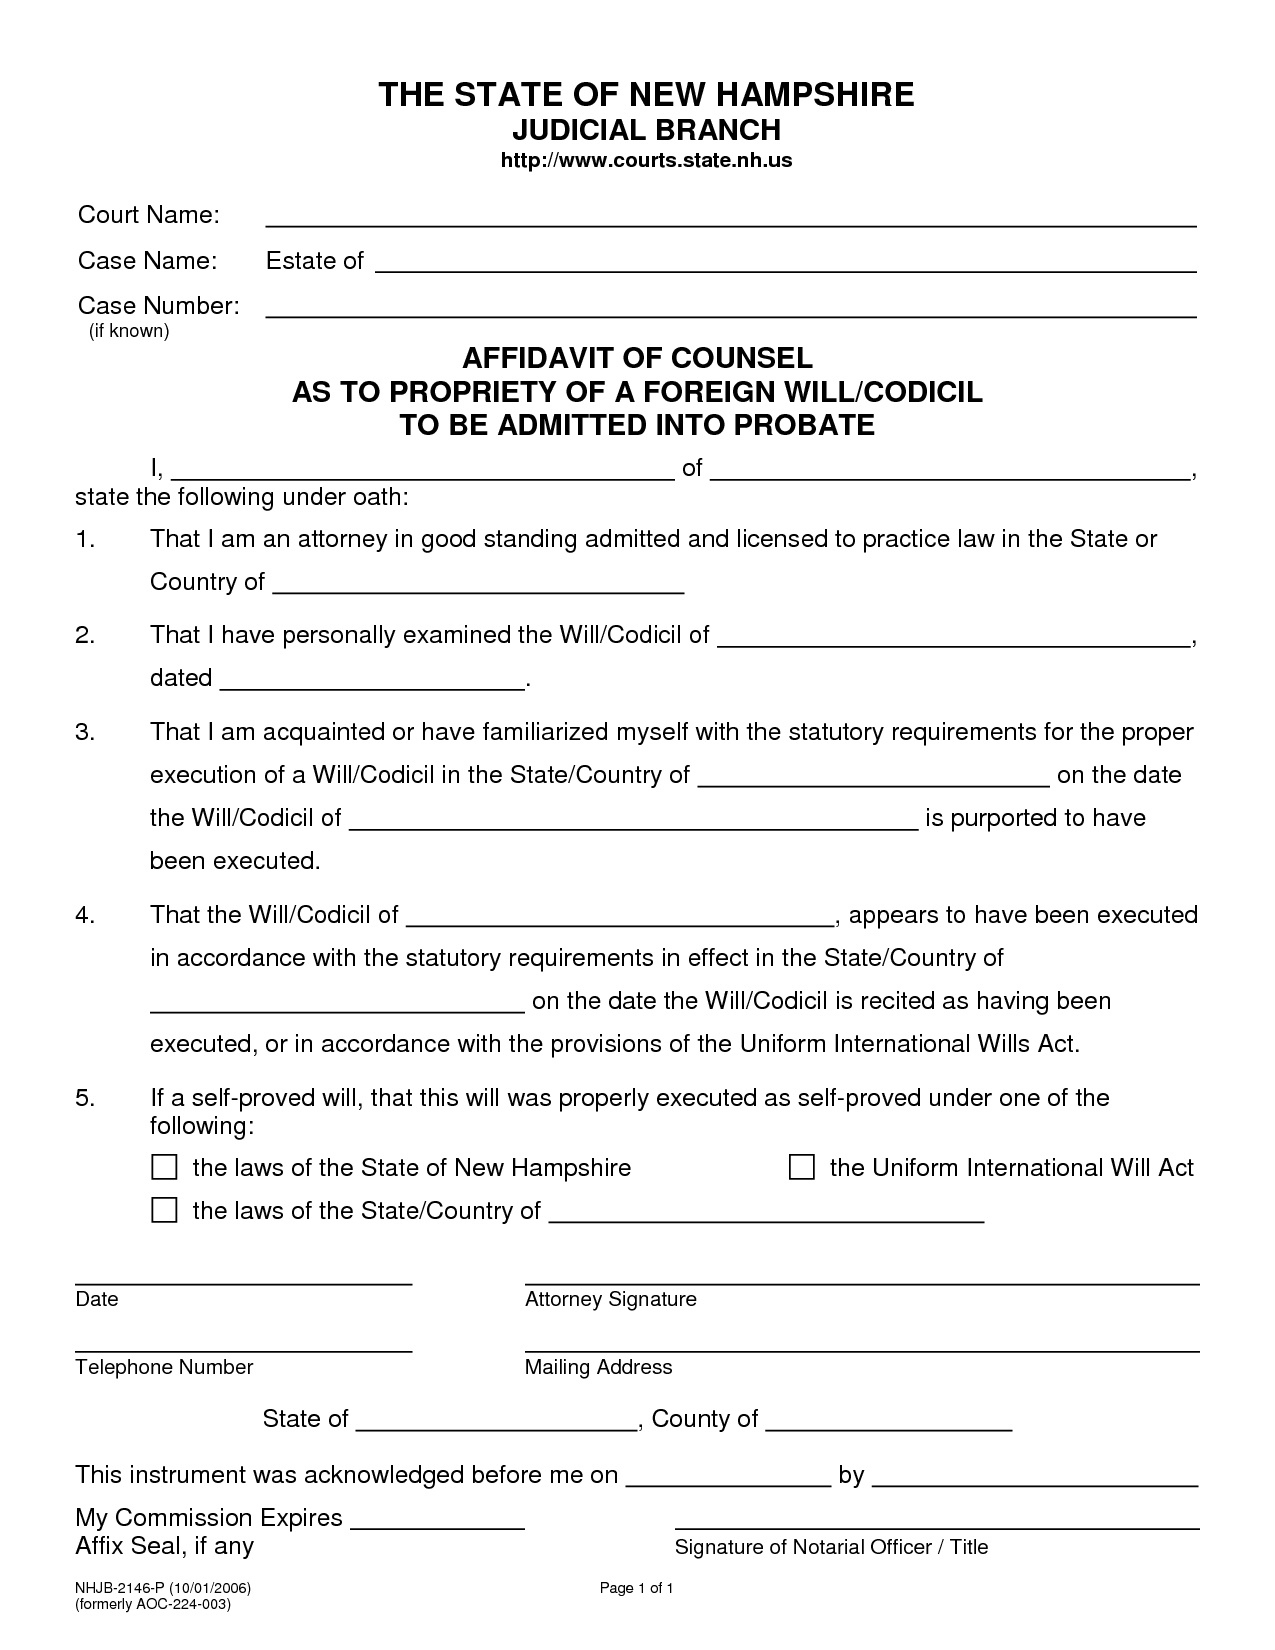 Free Printable Blank Legal Forms | Shop Fresh - Free Printable Legal Forms